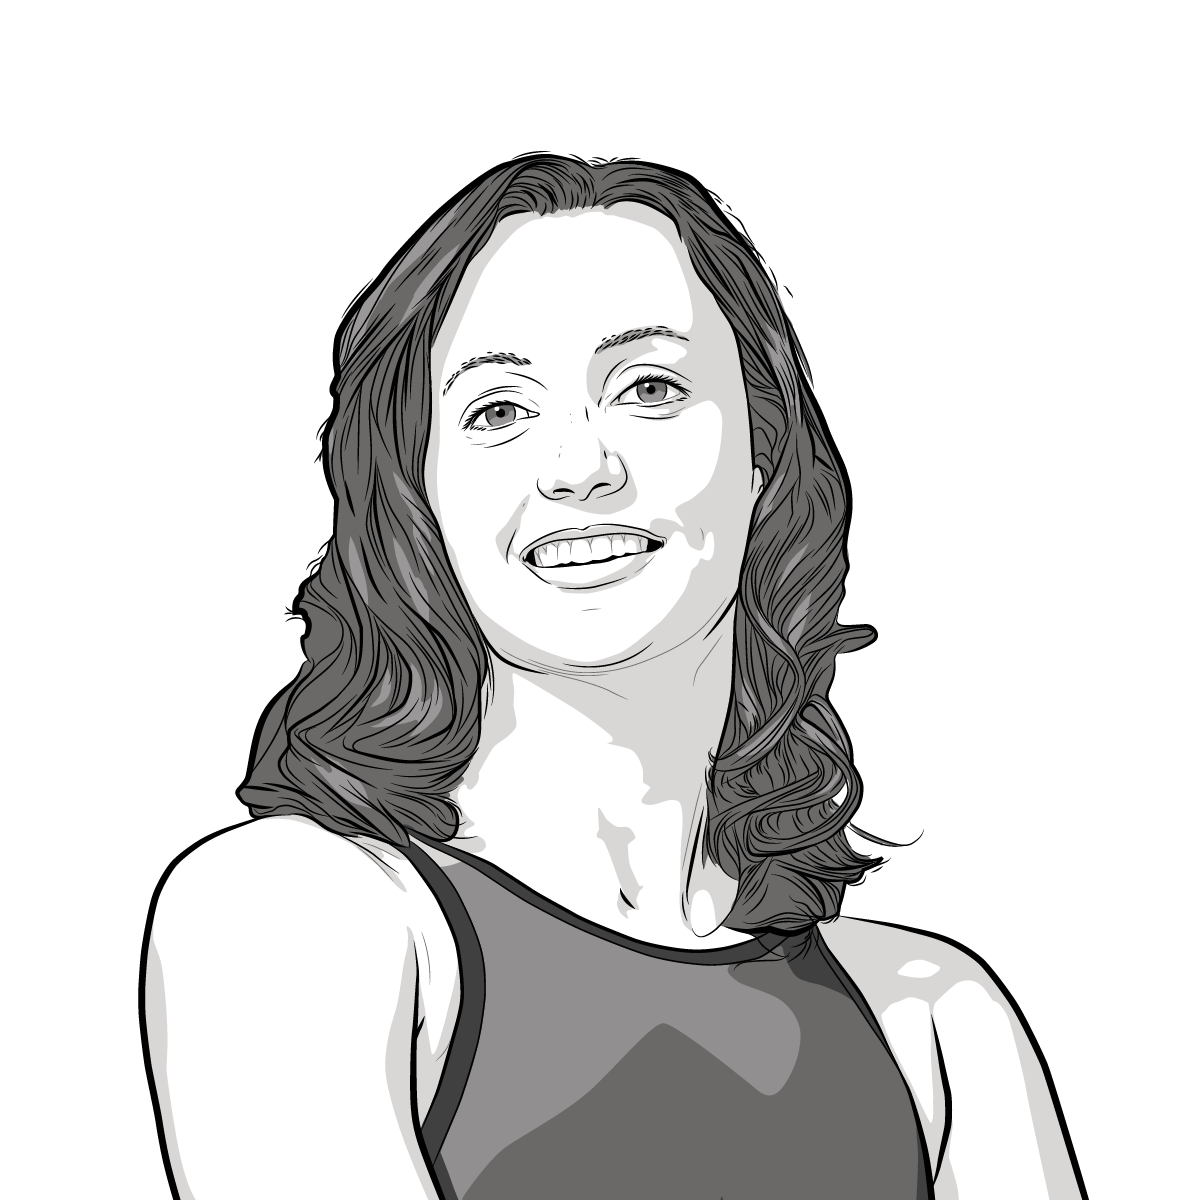 Athlete Portrait of Rebecca Soni, illustration by Max Hancock